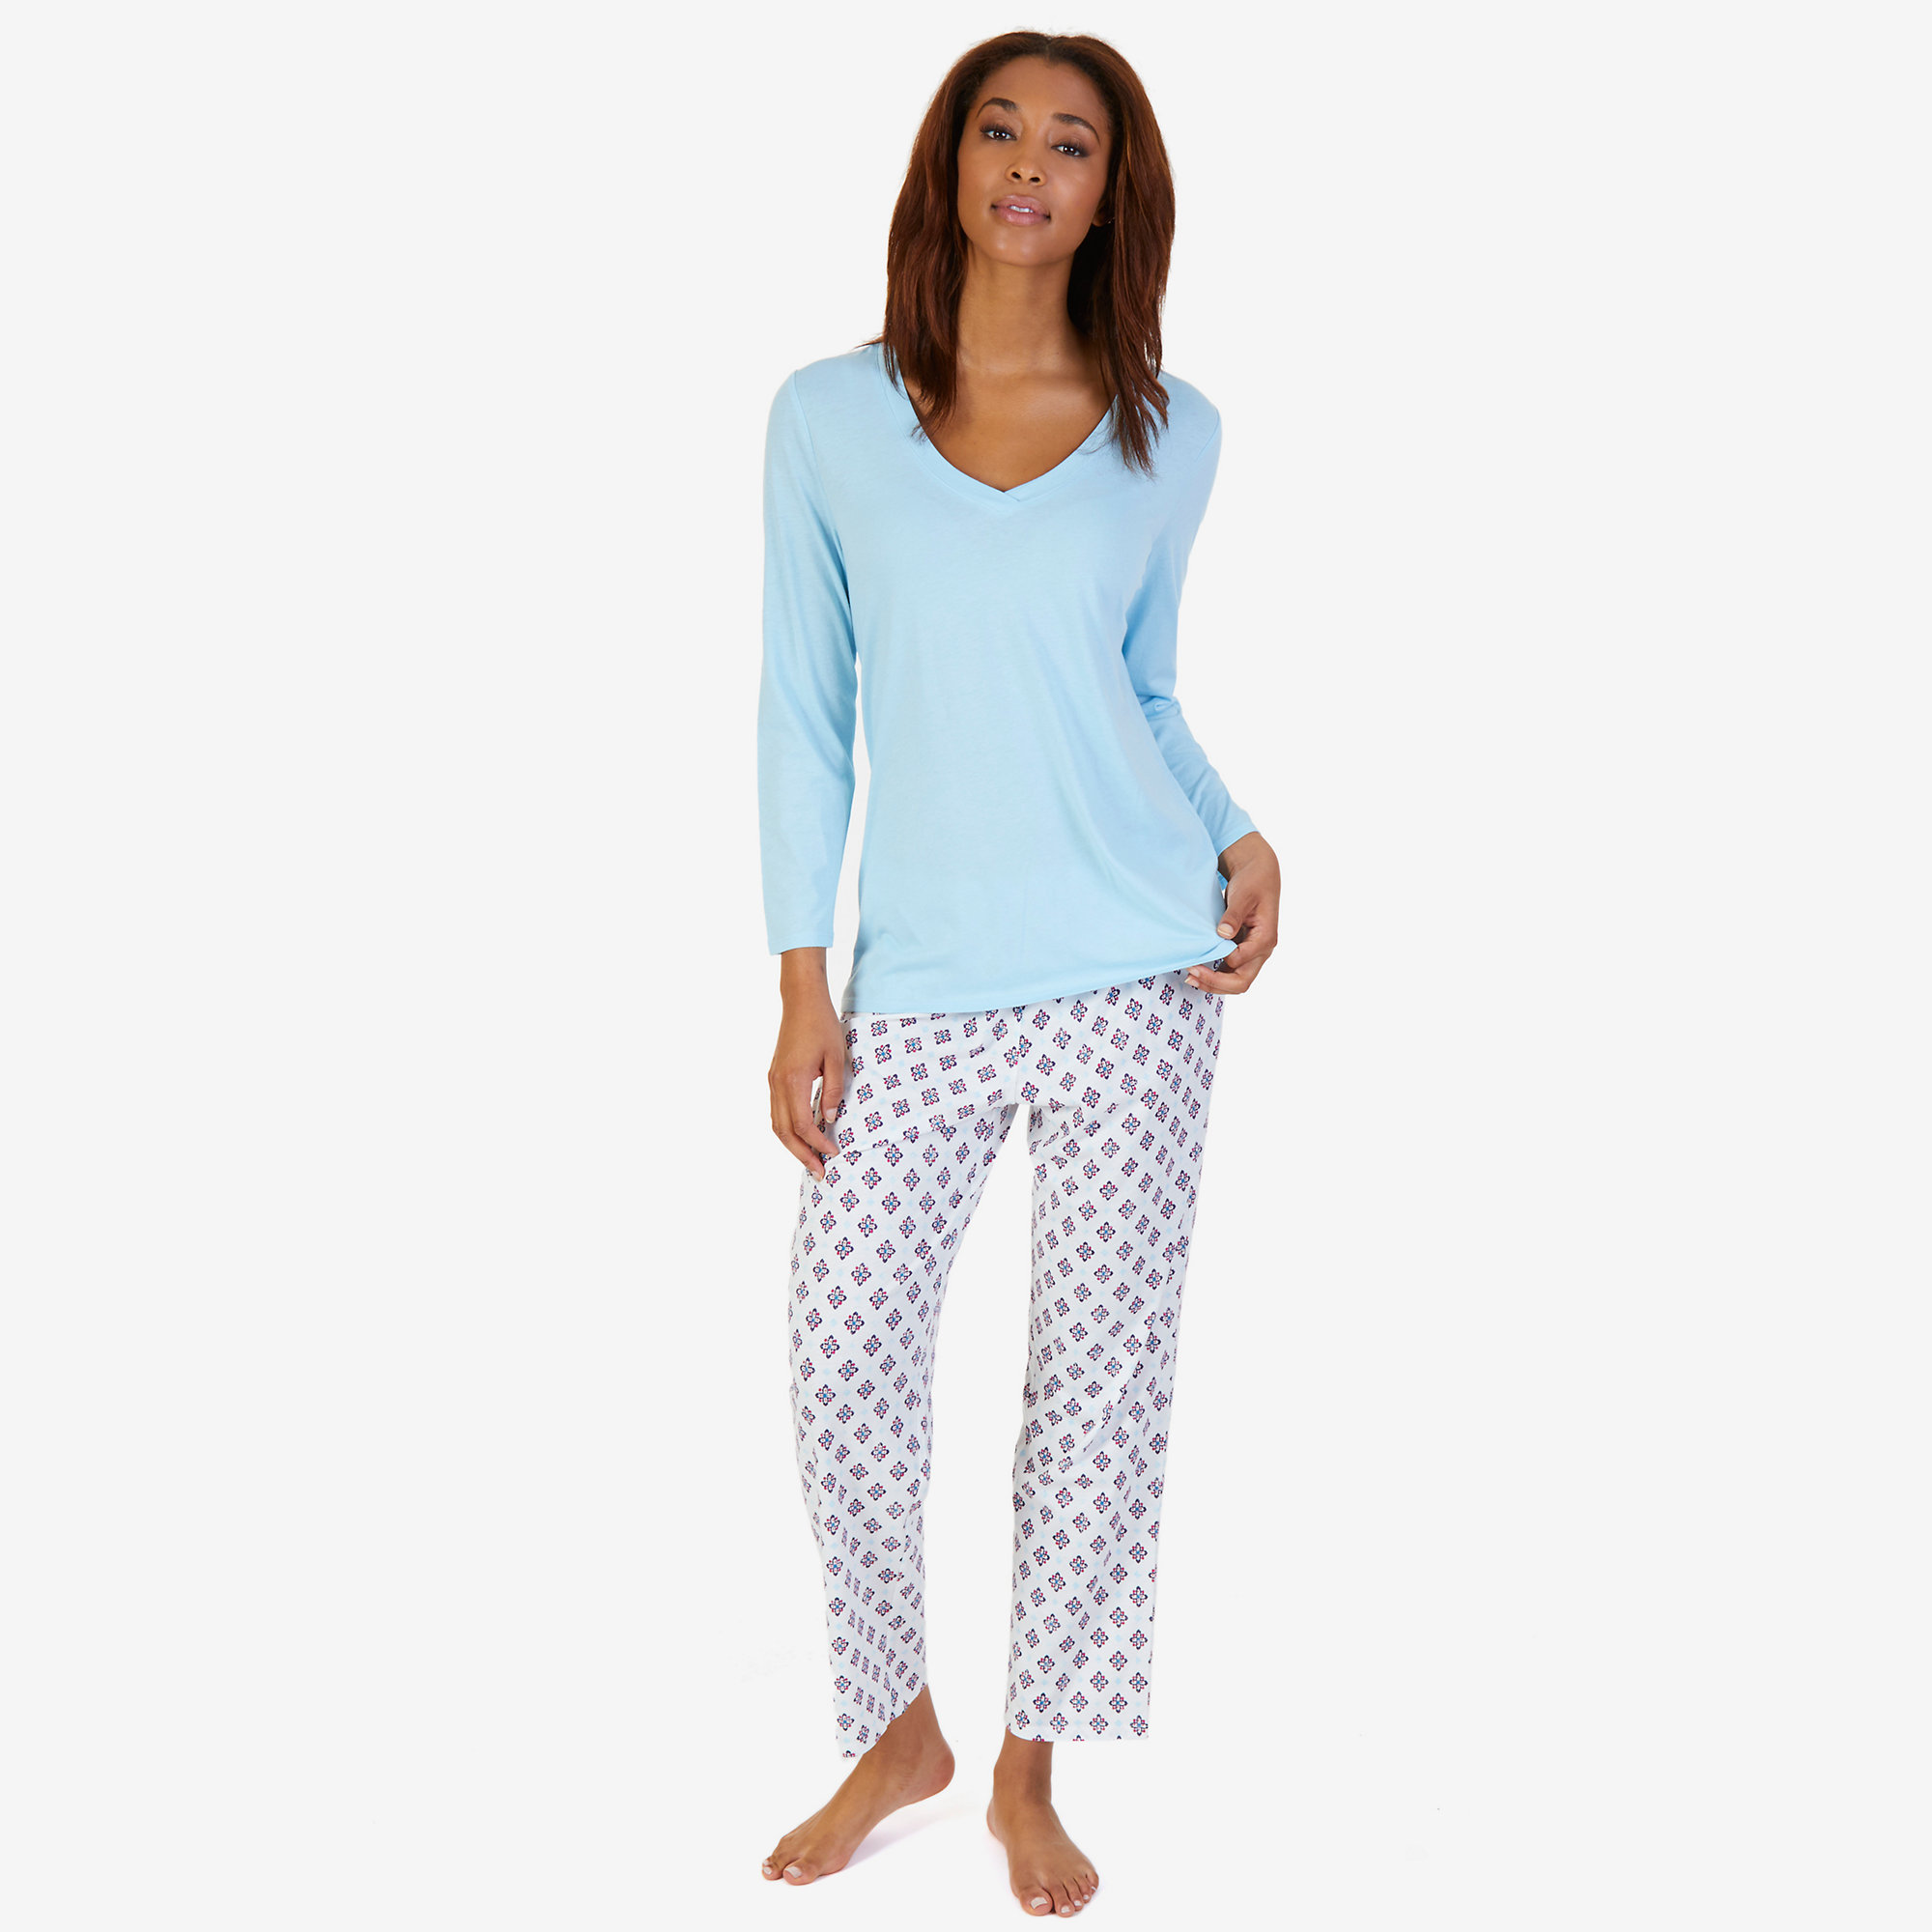 Discover the range of women's nightwear with ASOS. Shop for camisoles, nighties and loungewear. Shop today at ASOS.